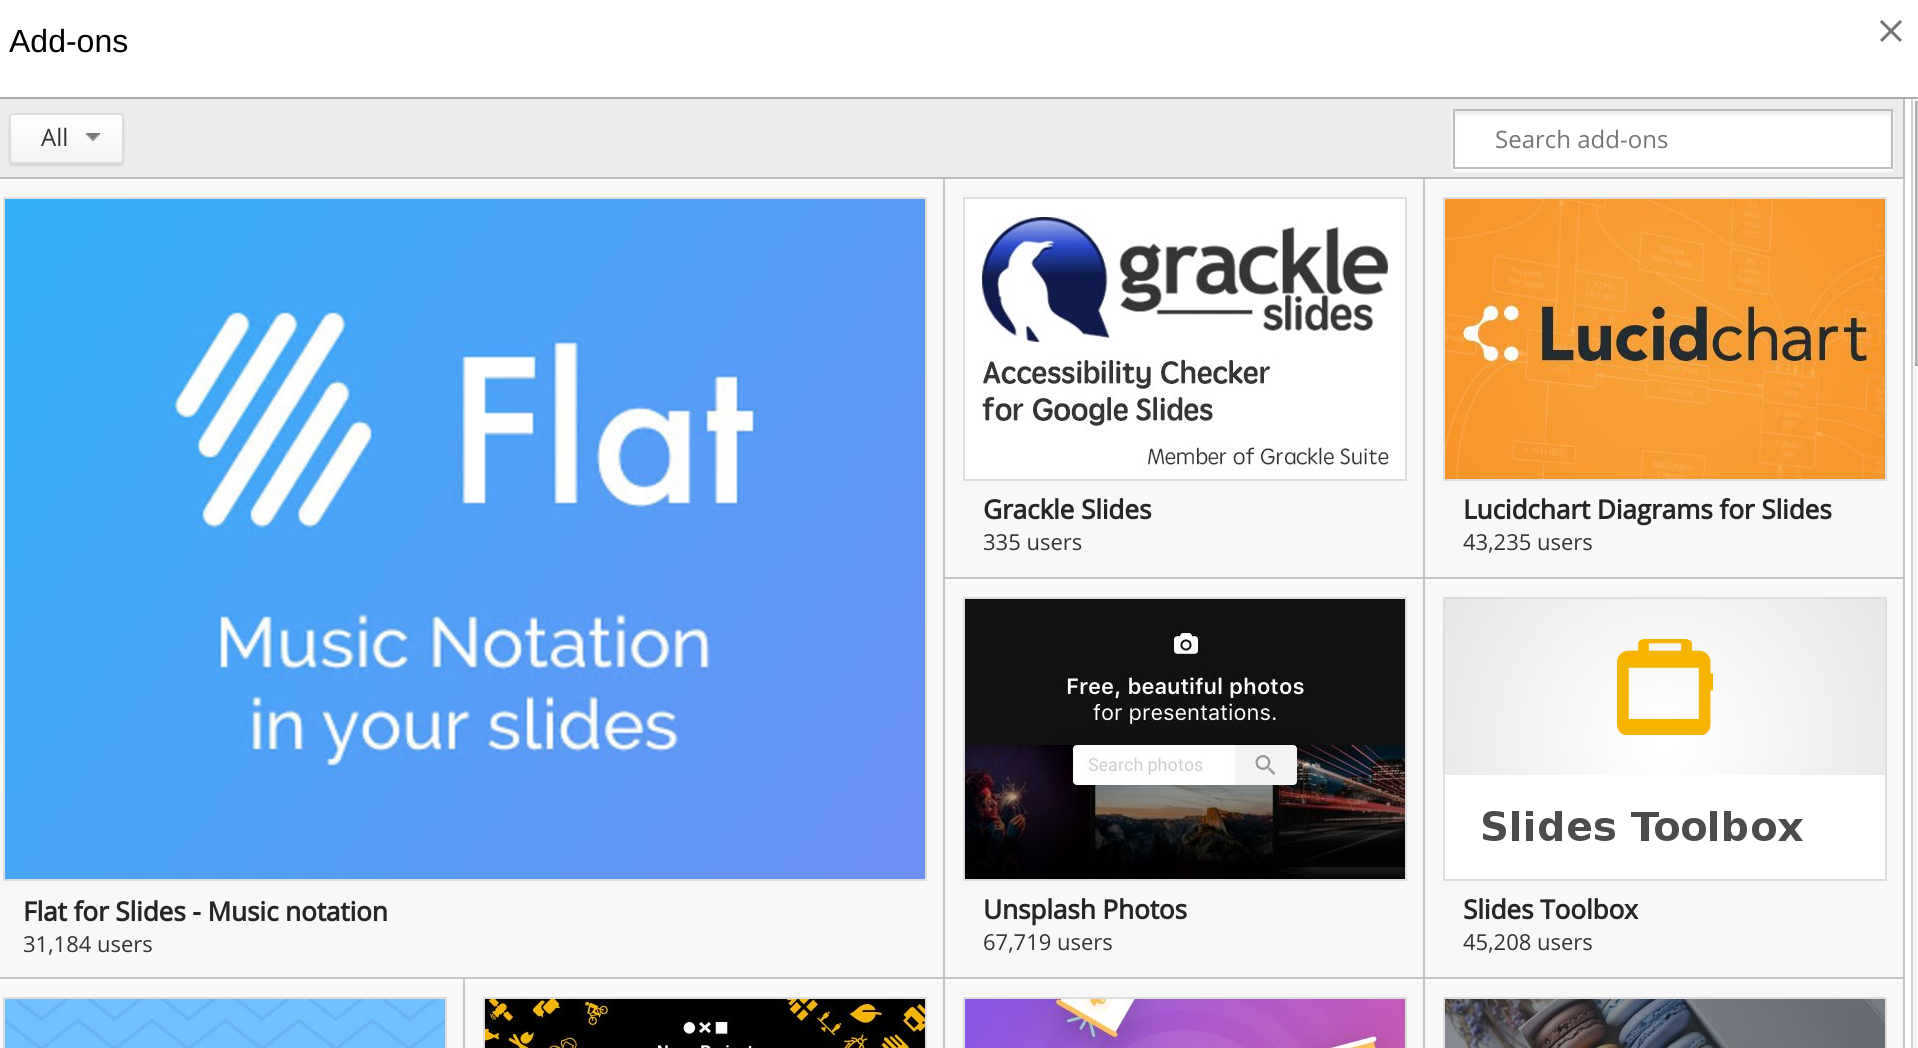 Using a Google Slides Add-on or extension